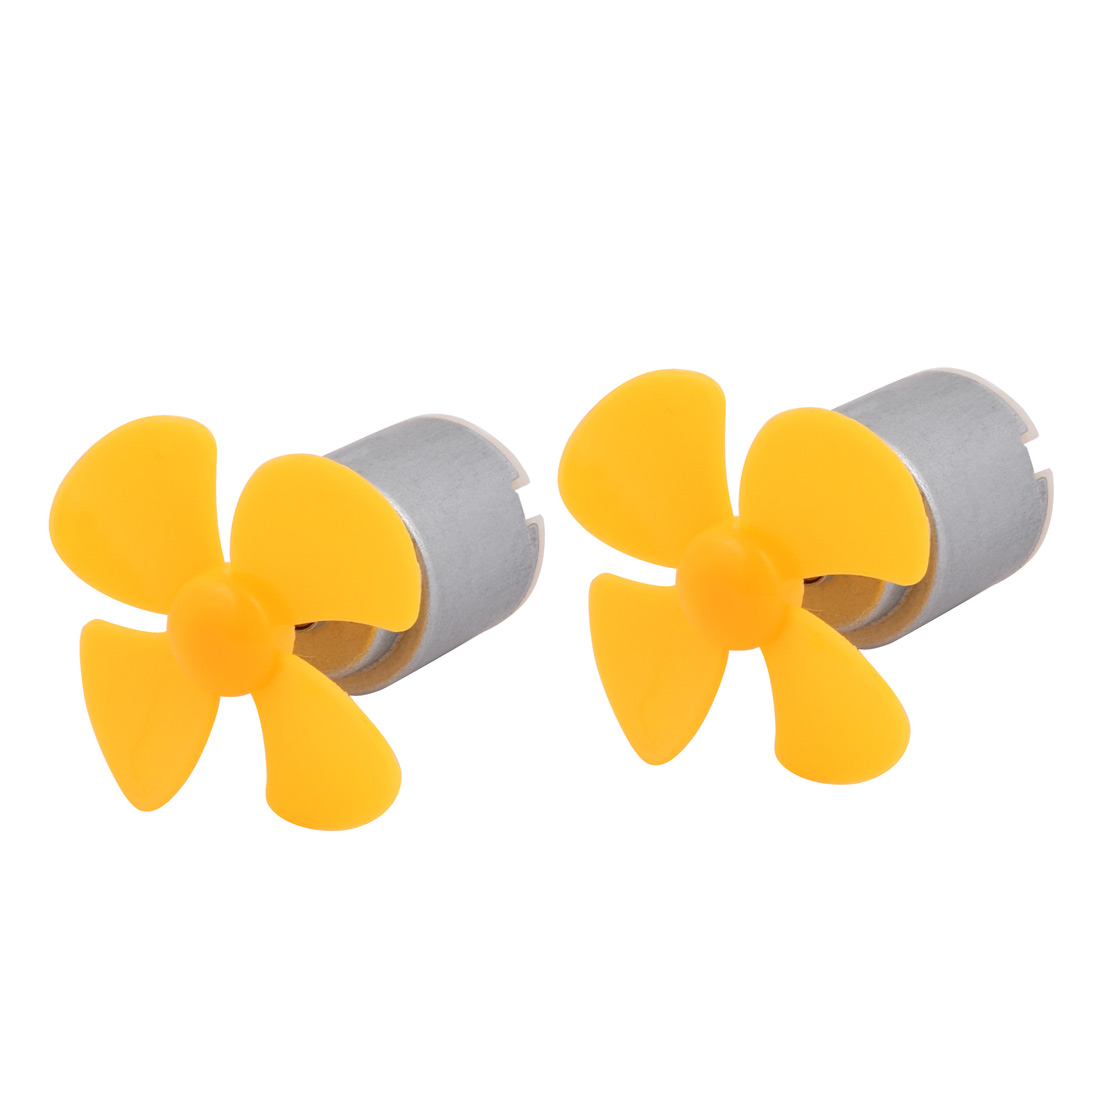 2Pcs DC 3V 19500RPM High Torque Motor 4 Vanes 40mm Dia Aircraft Propeller Yellow